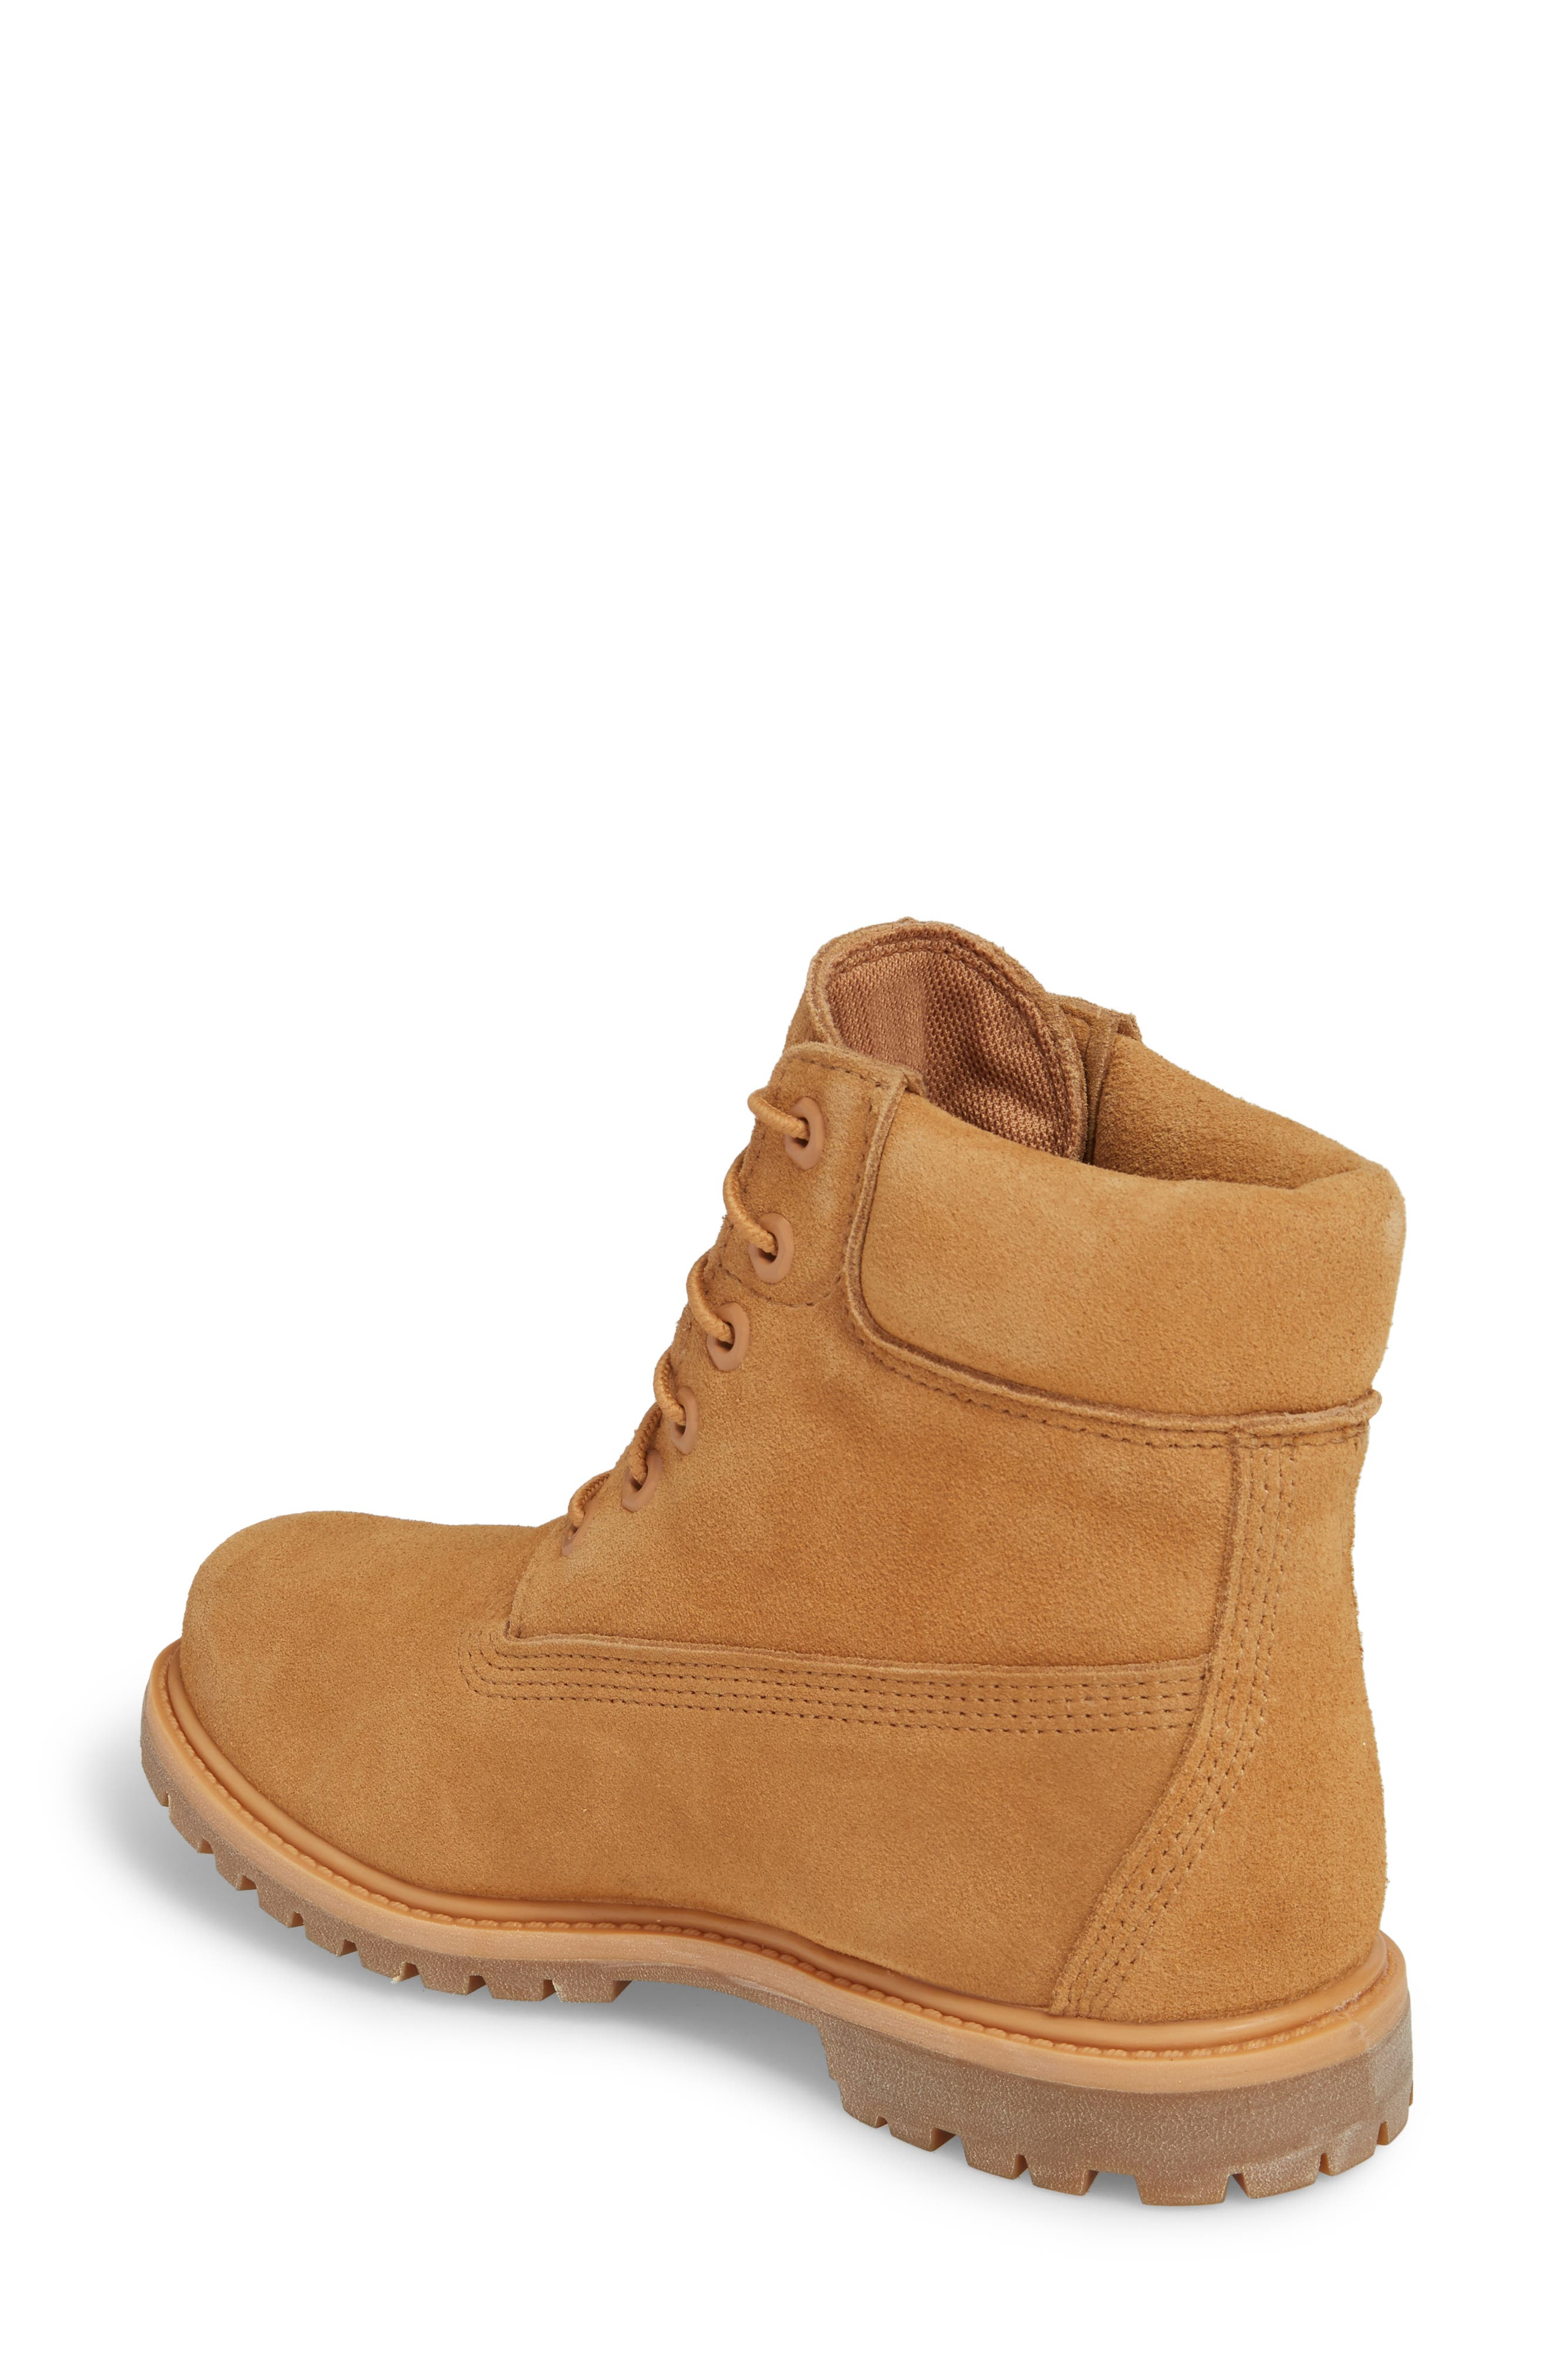 6 Inch Boot,                             Alternate thumbnail 2, color,                             Biscuit Nubuck Leather